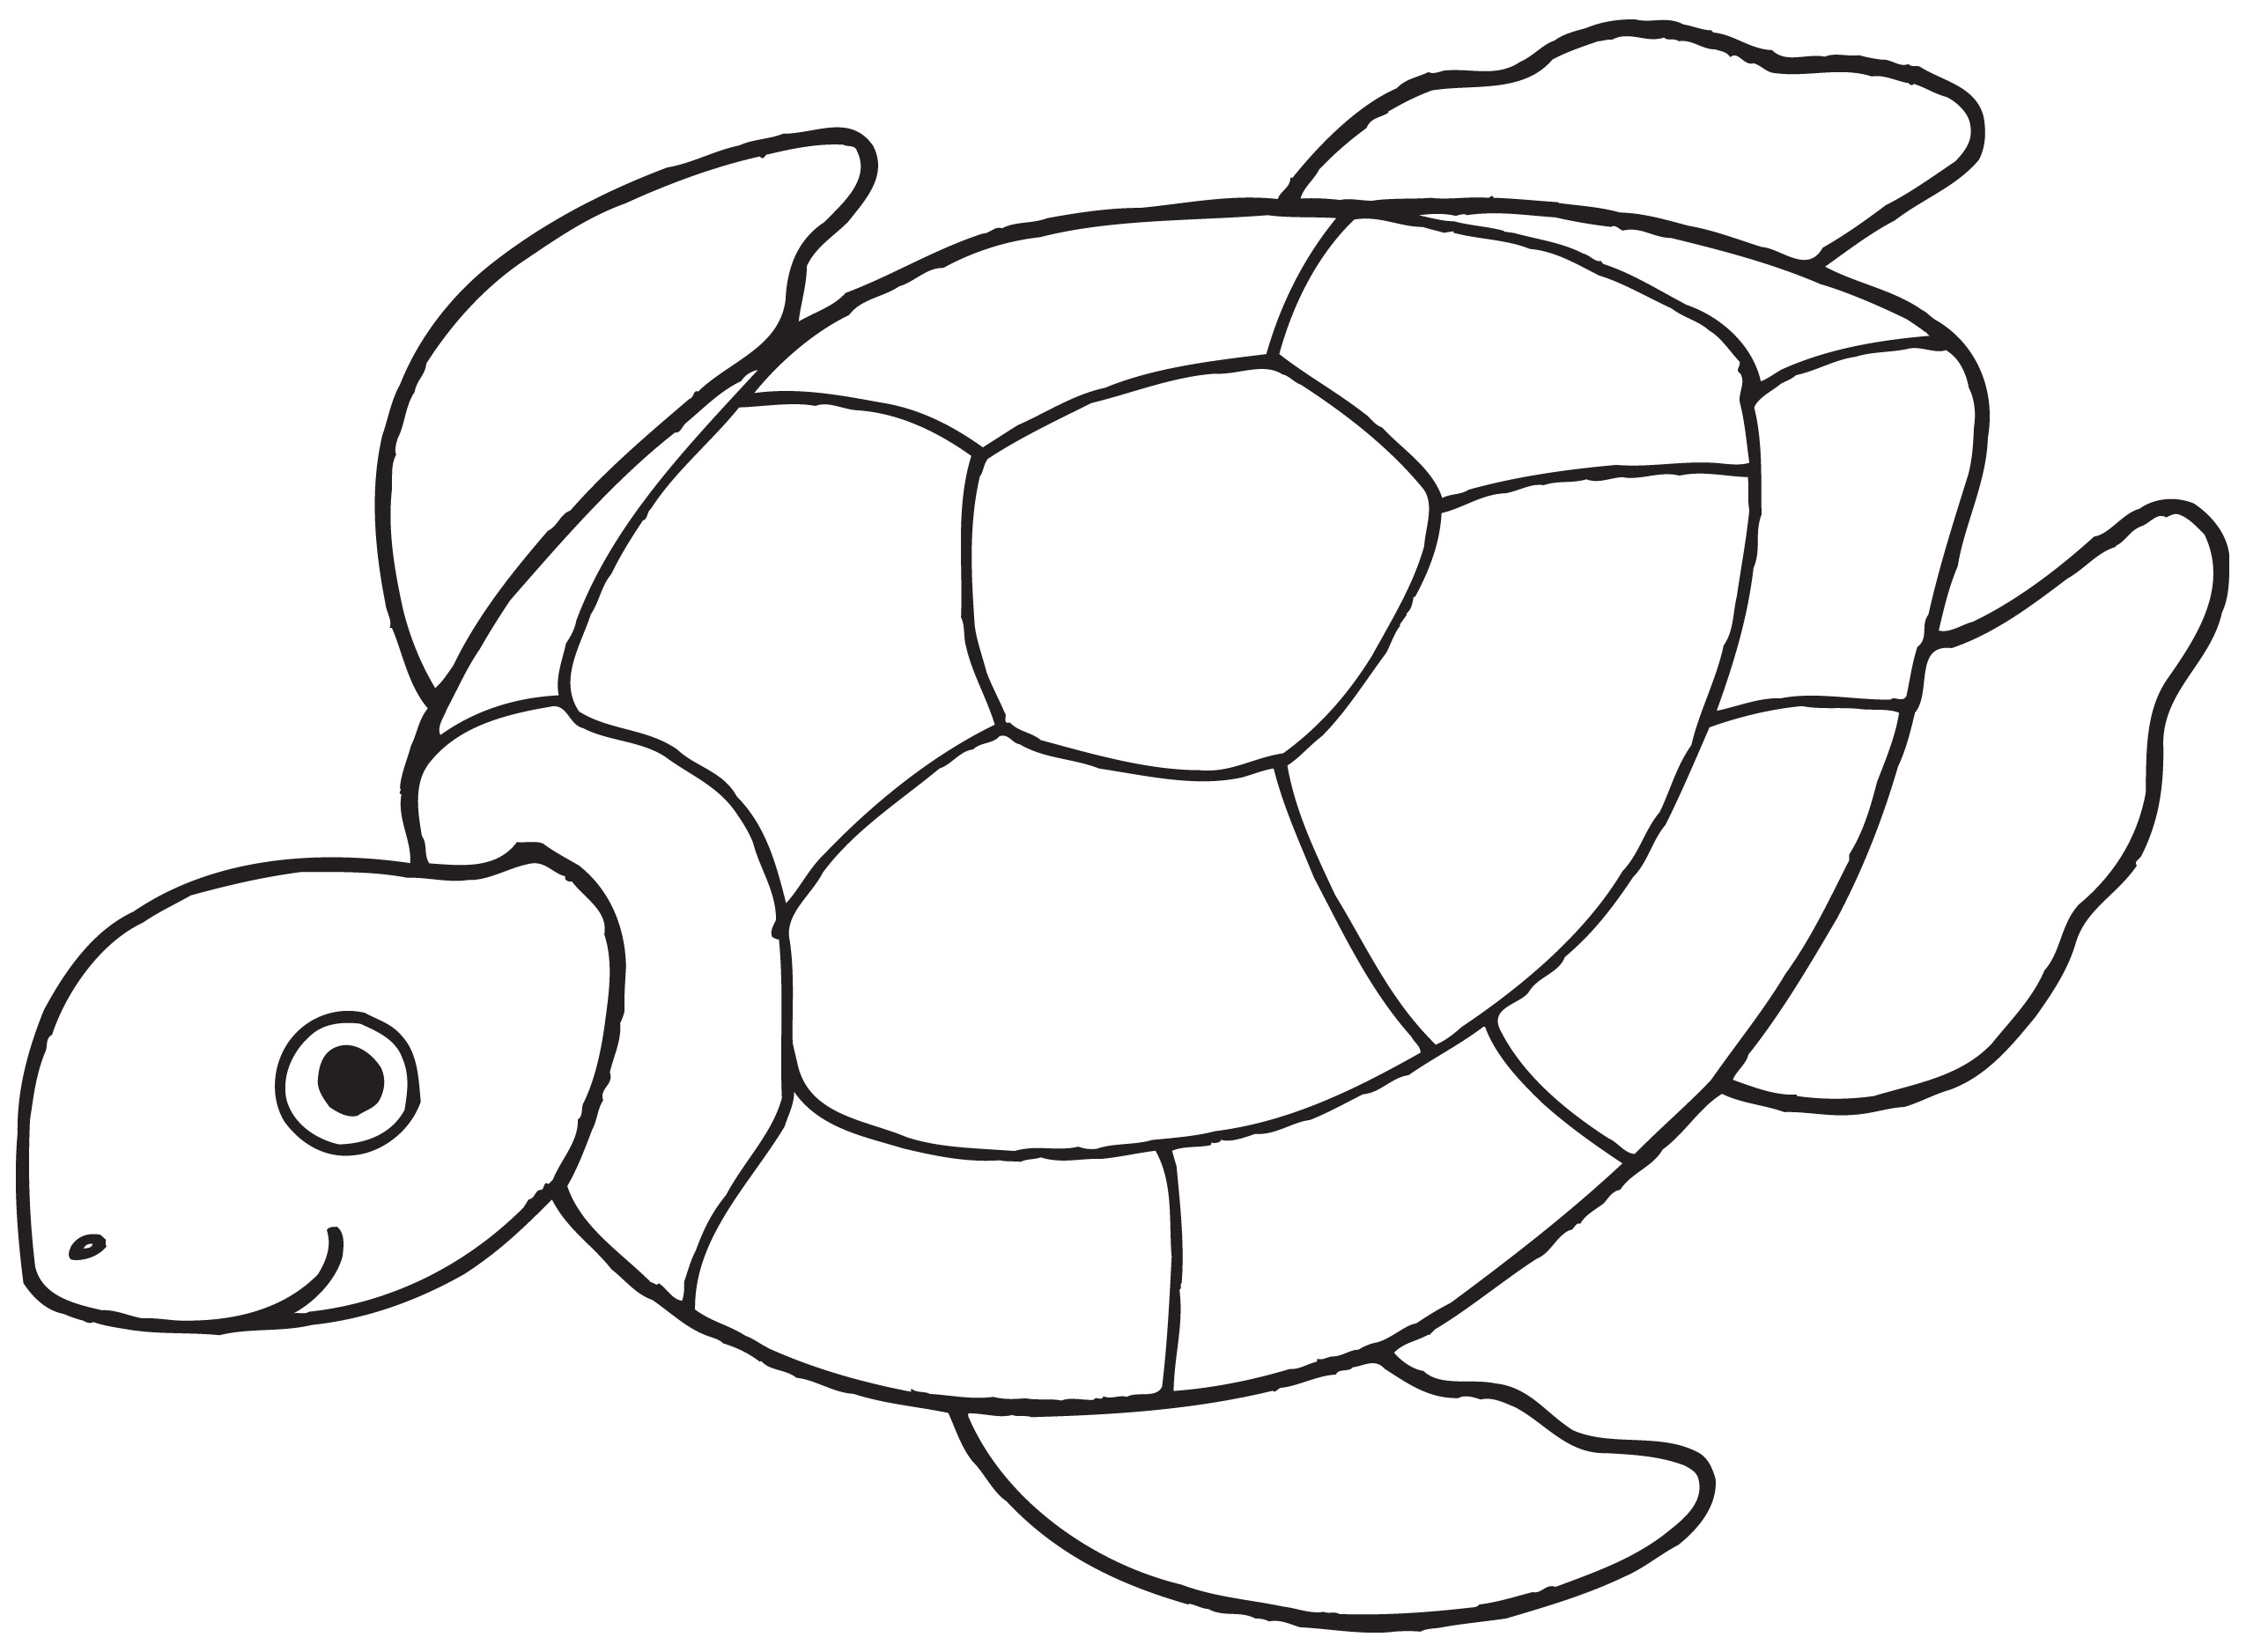 Line Drawing Turtle : Sea turtle line art clipart best